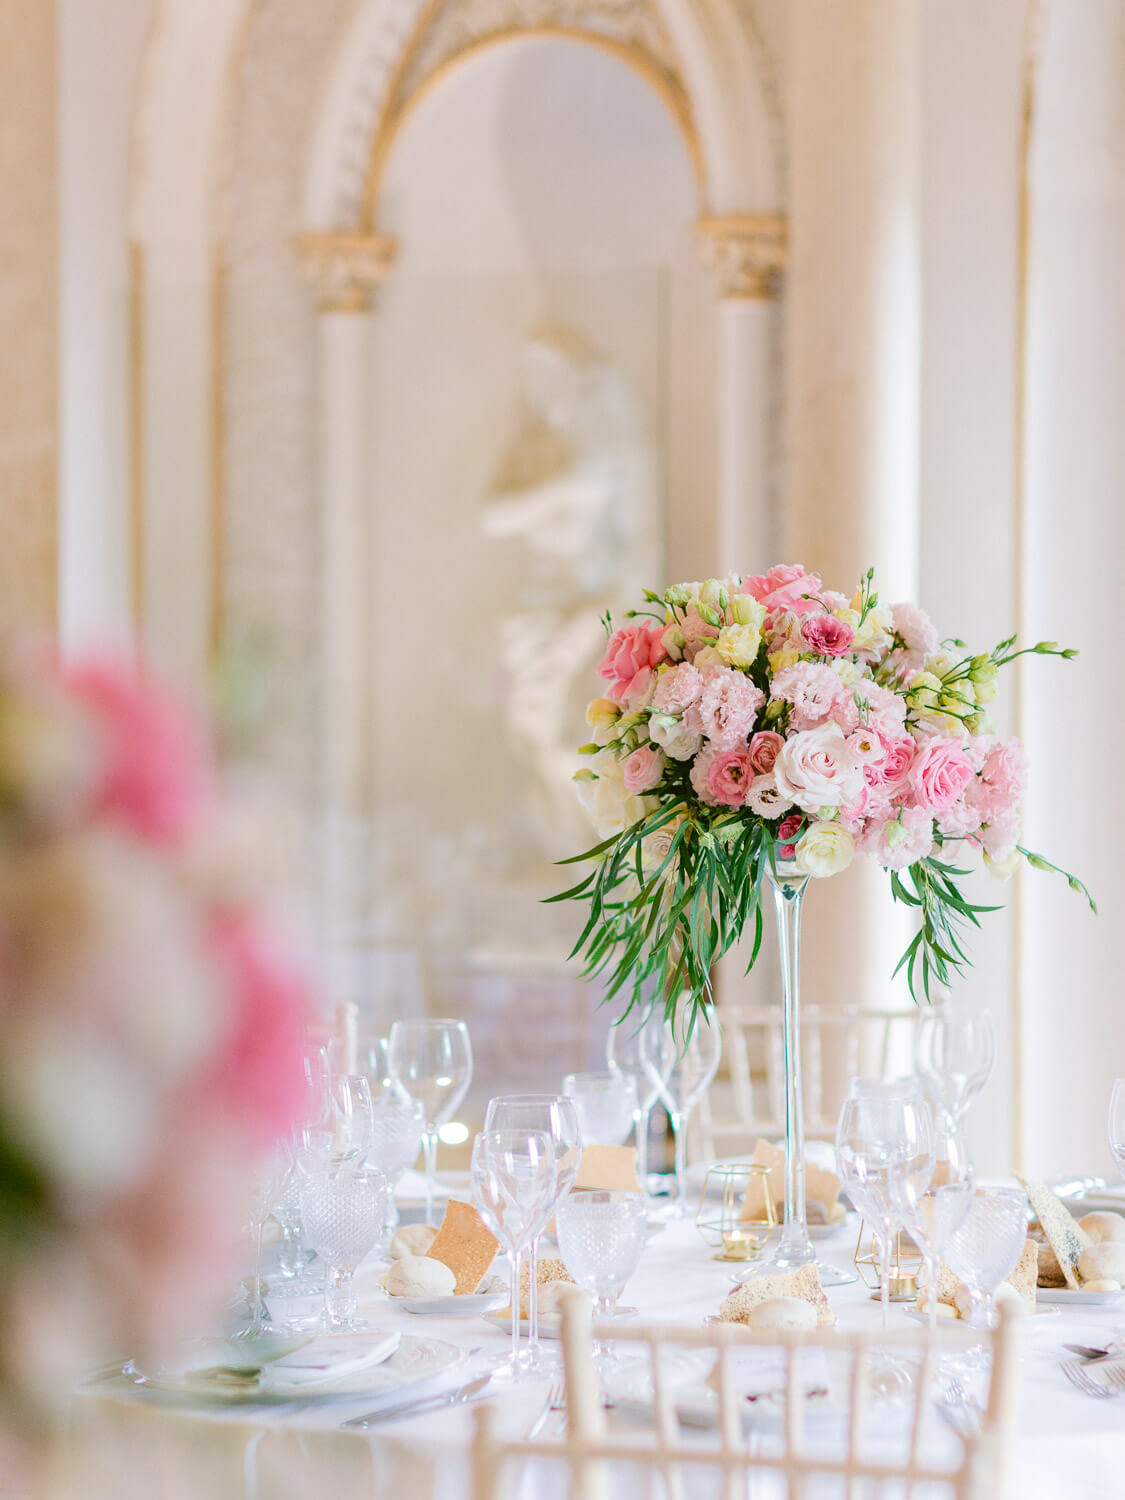 a tall floral centrepiece for a wedding reception in Monserrate Palace Sintra by Portugal Wedding Photographer